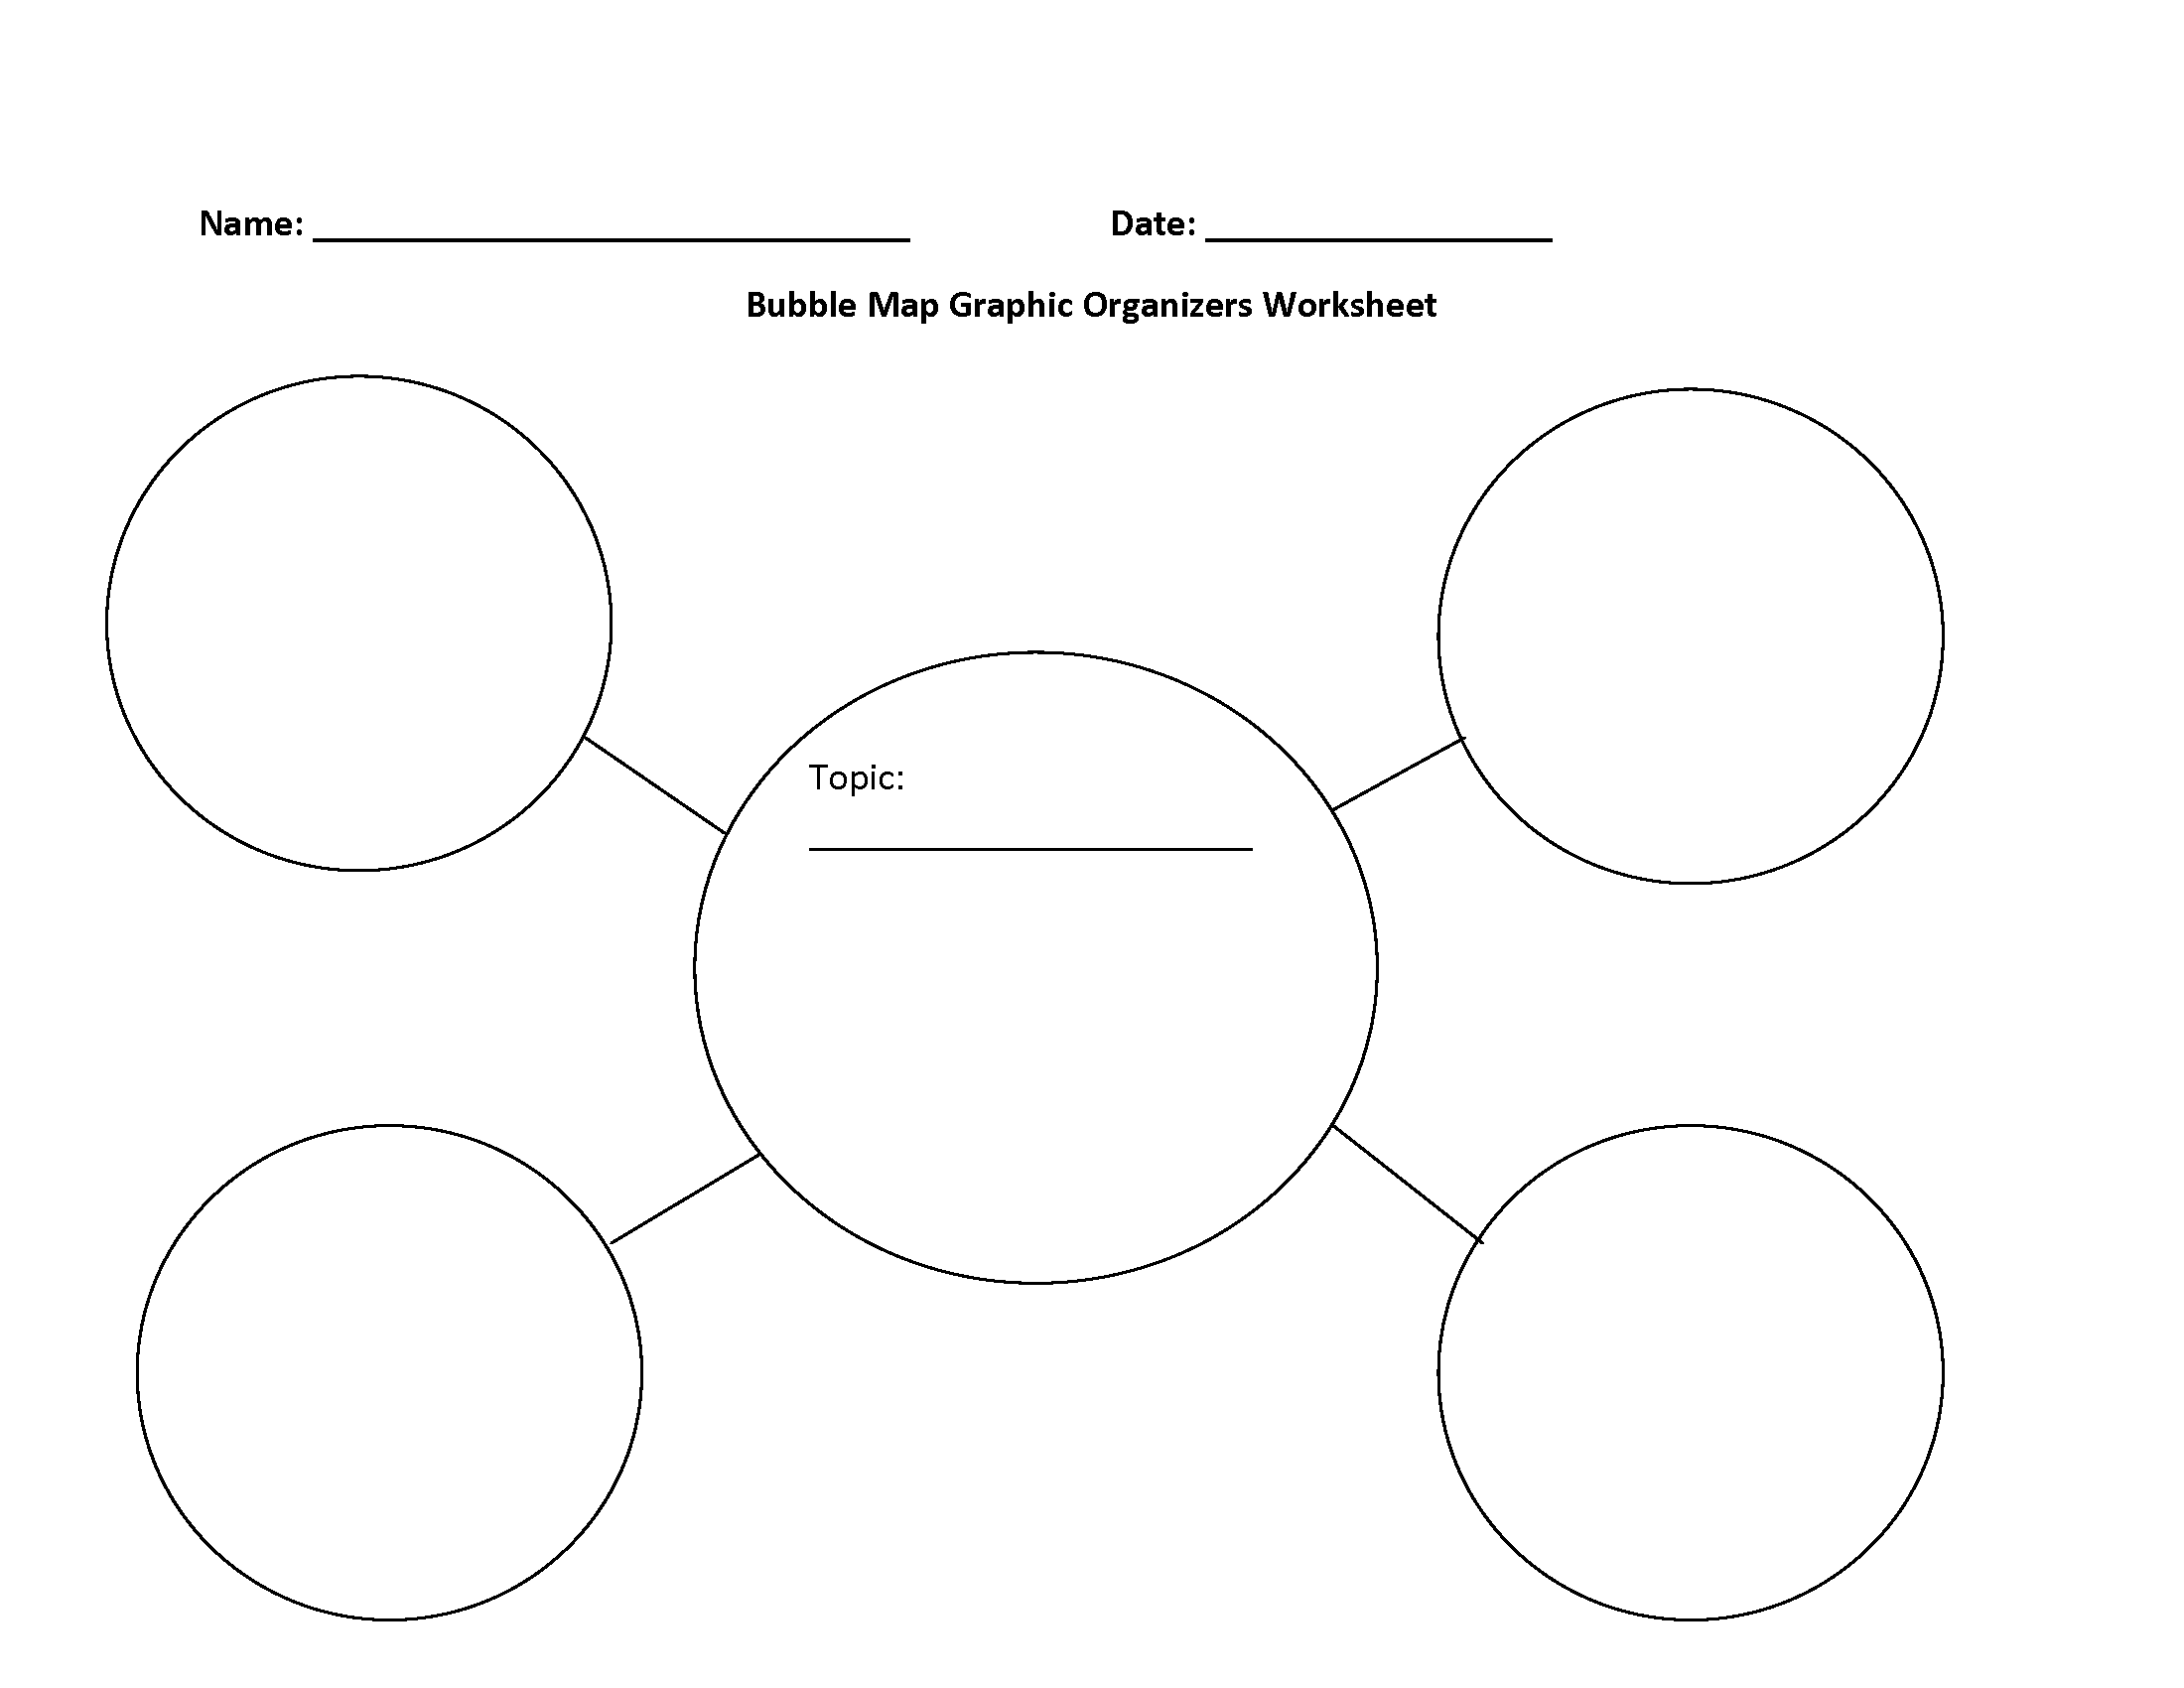 Bubble Map Graphic Organizers Worksheets